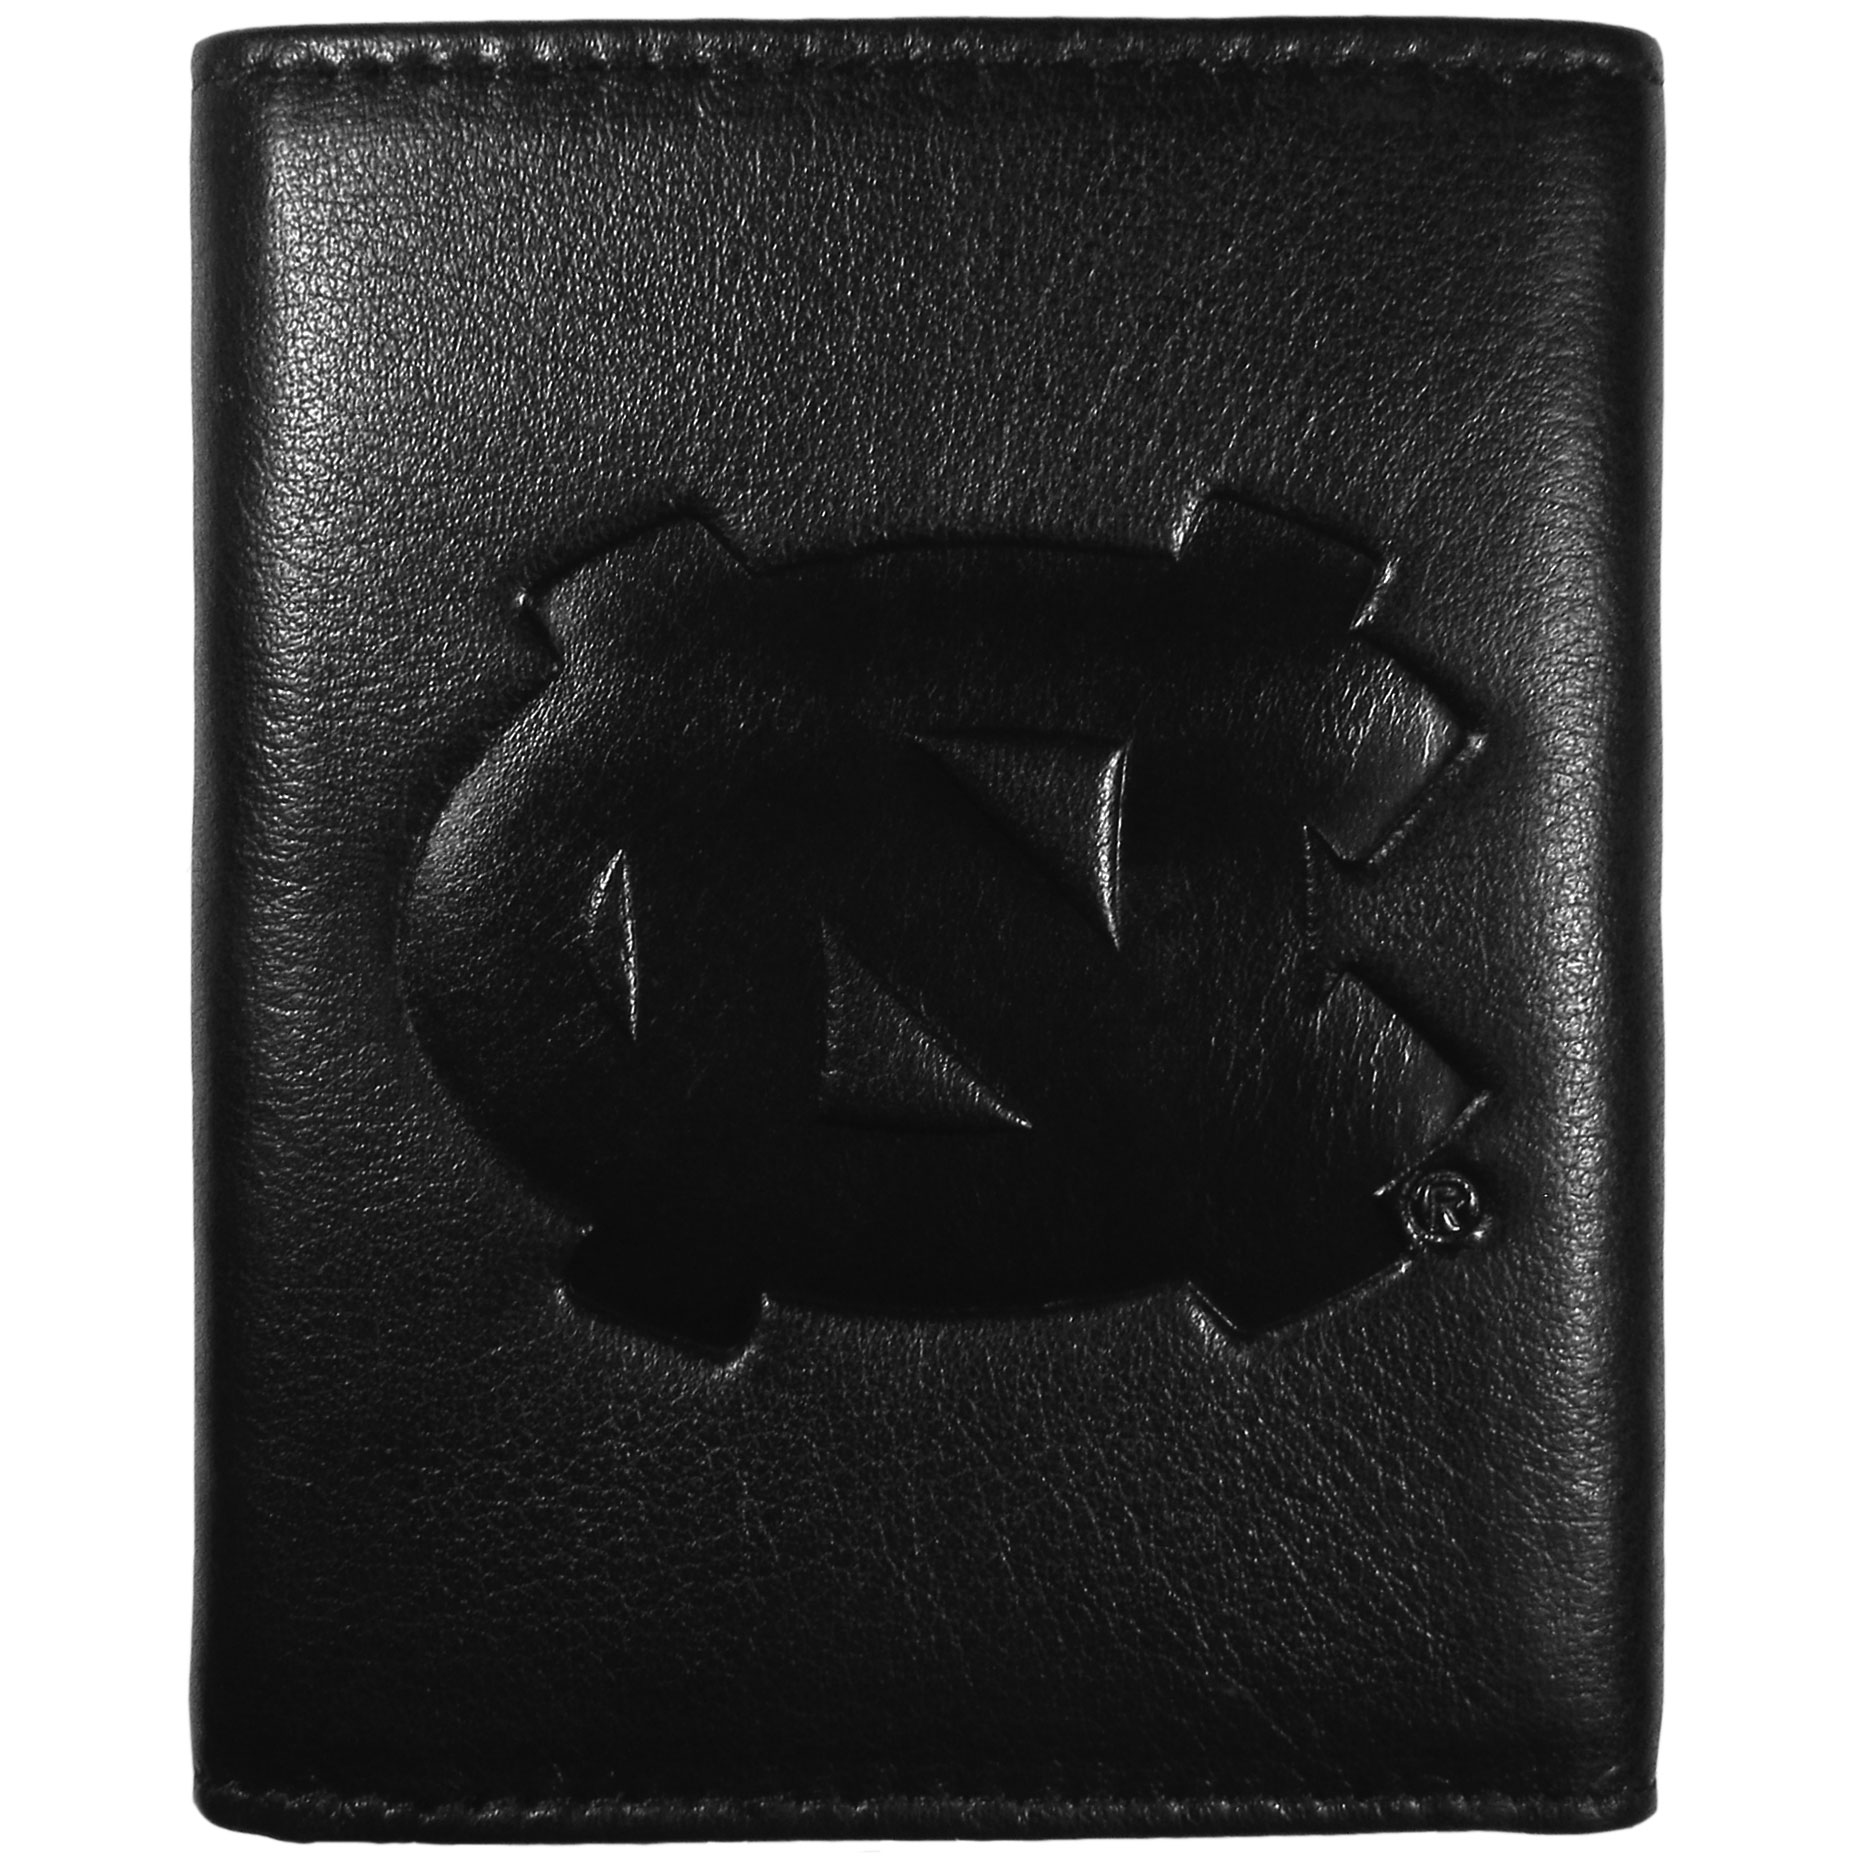 N. Carolina Tar Heels Embossed Leather Tri-fold Wallet - This stylish leather wallet is made of high quality leather with a supple feel and classic look. The front of the tri-fold style wallet has a deeply embossed N. Carolina Tar Heels logo. The billfold is packed with features that will allow to keep organized, lots of credit card slots, windowed ID slot, large pockets for bills and a removable sleeve with extra slots for even more storage. This is a must-have men's fashion accessory that would make any fan very proud to own.